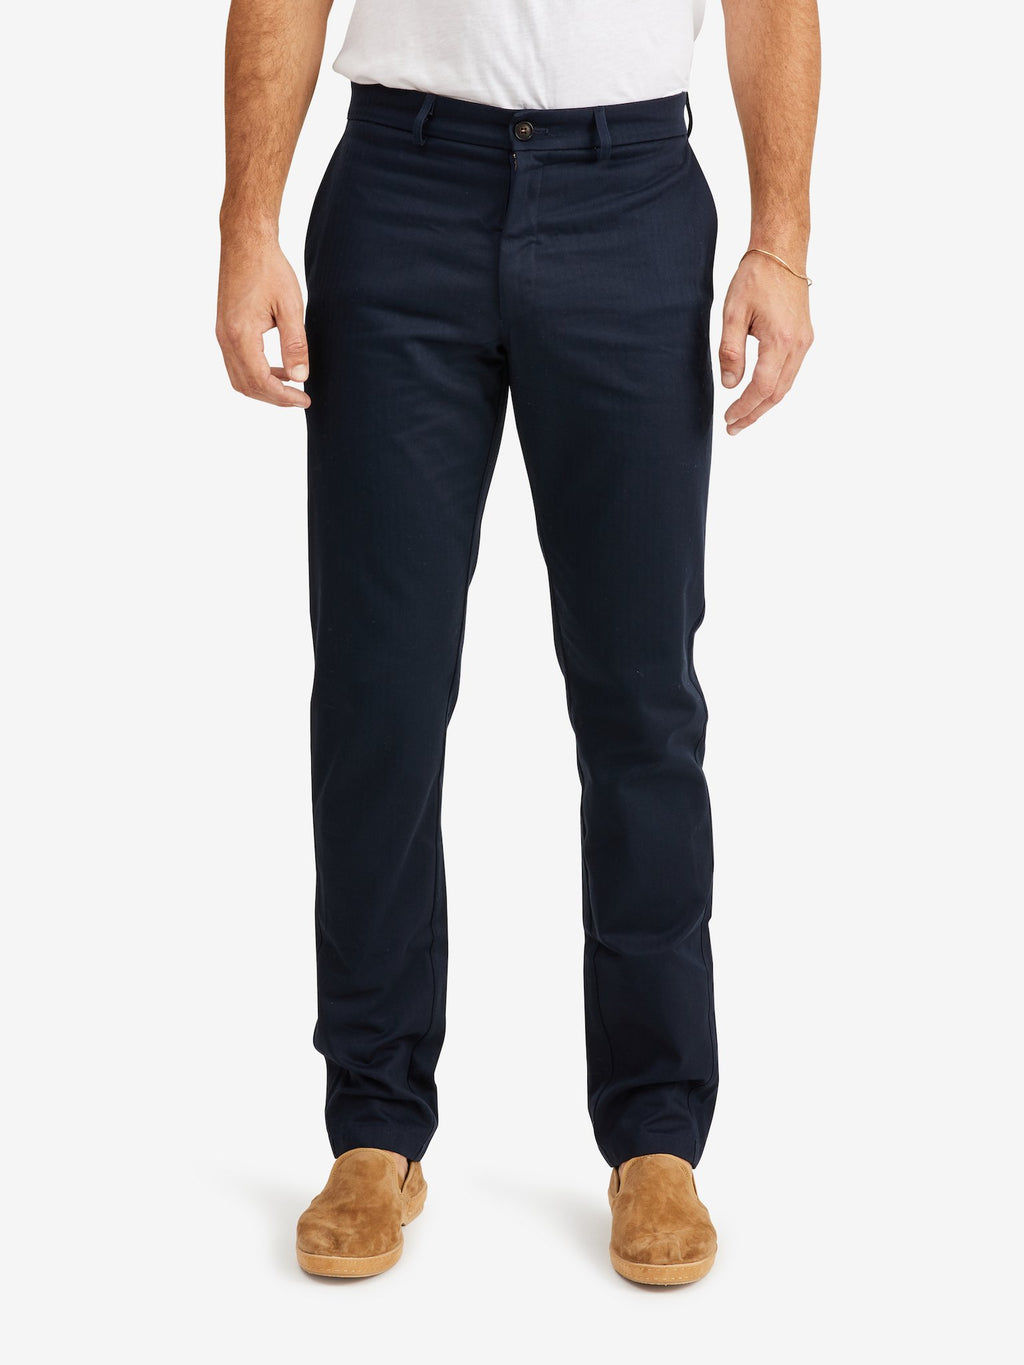 Freeman's-Sporting-Club-Arc-Pant-Navy